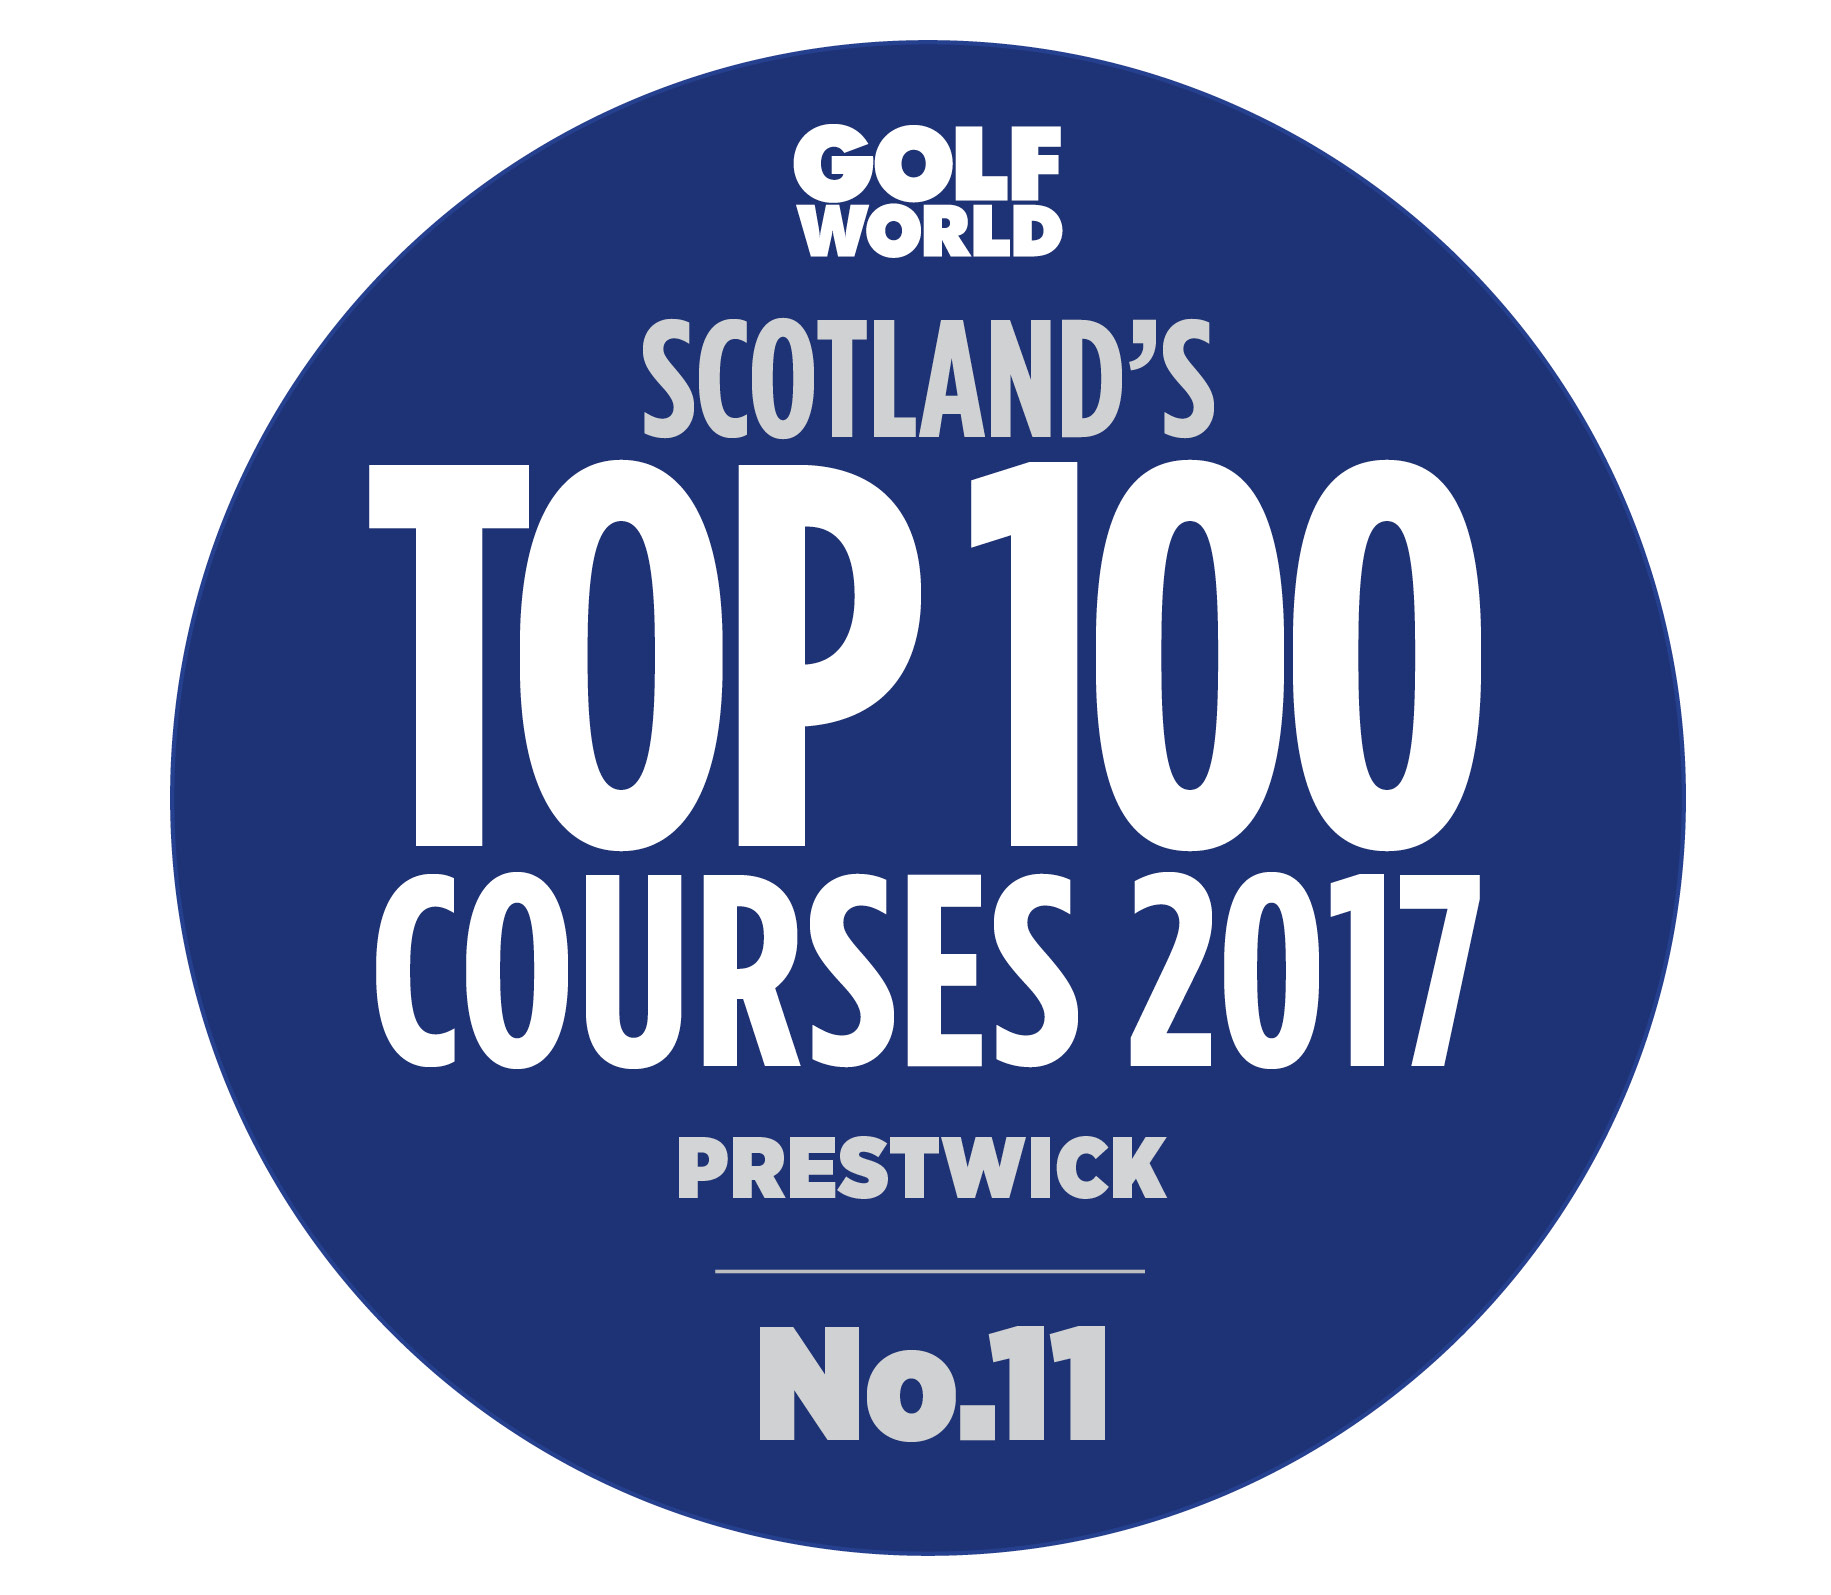 Golf World's Top 100 courses in Scotland